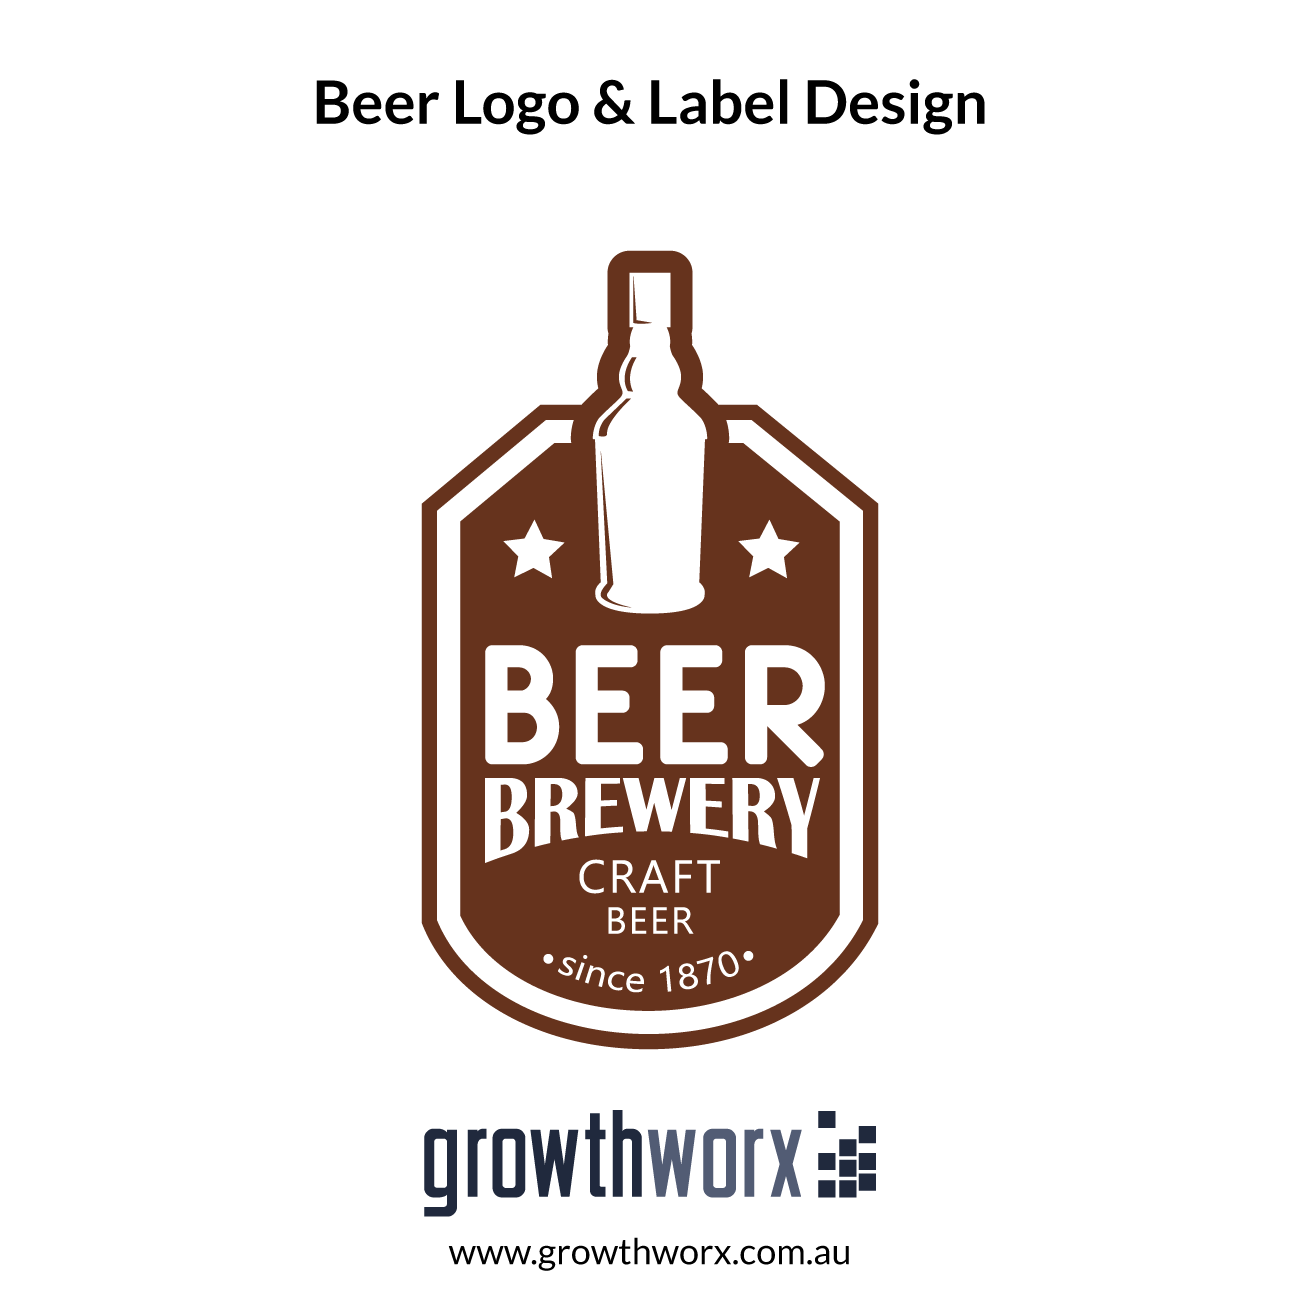 We will design beer logo and label 1